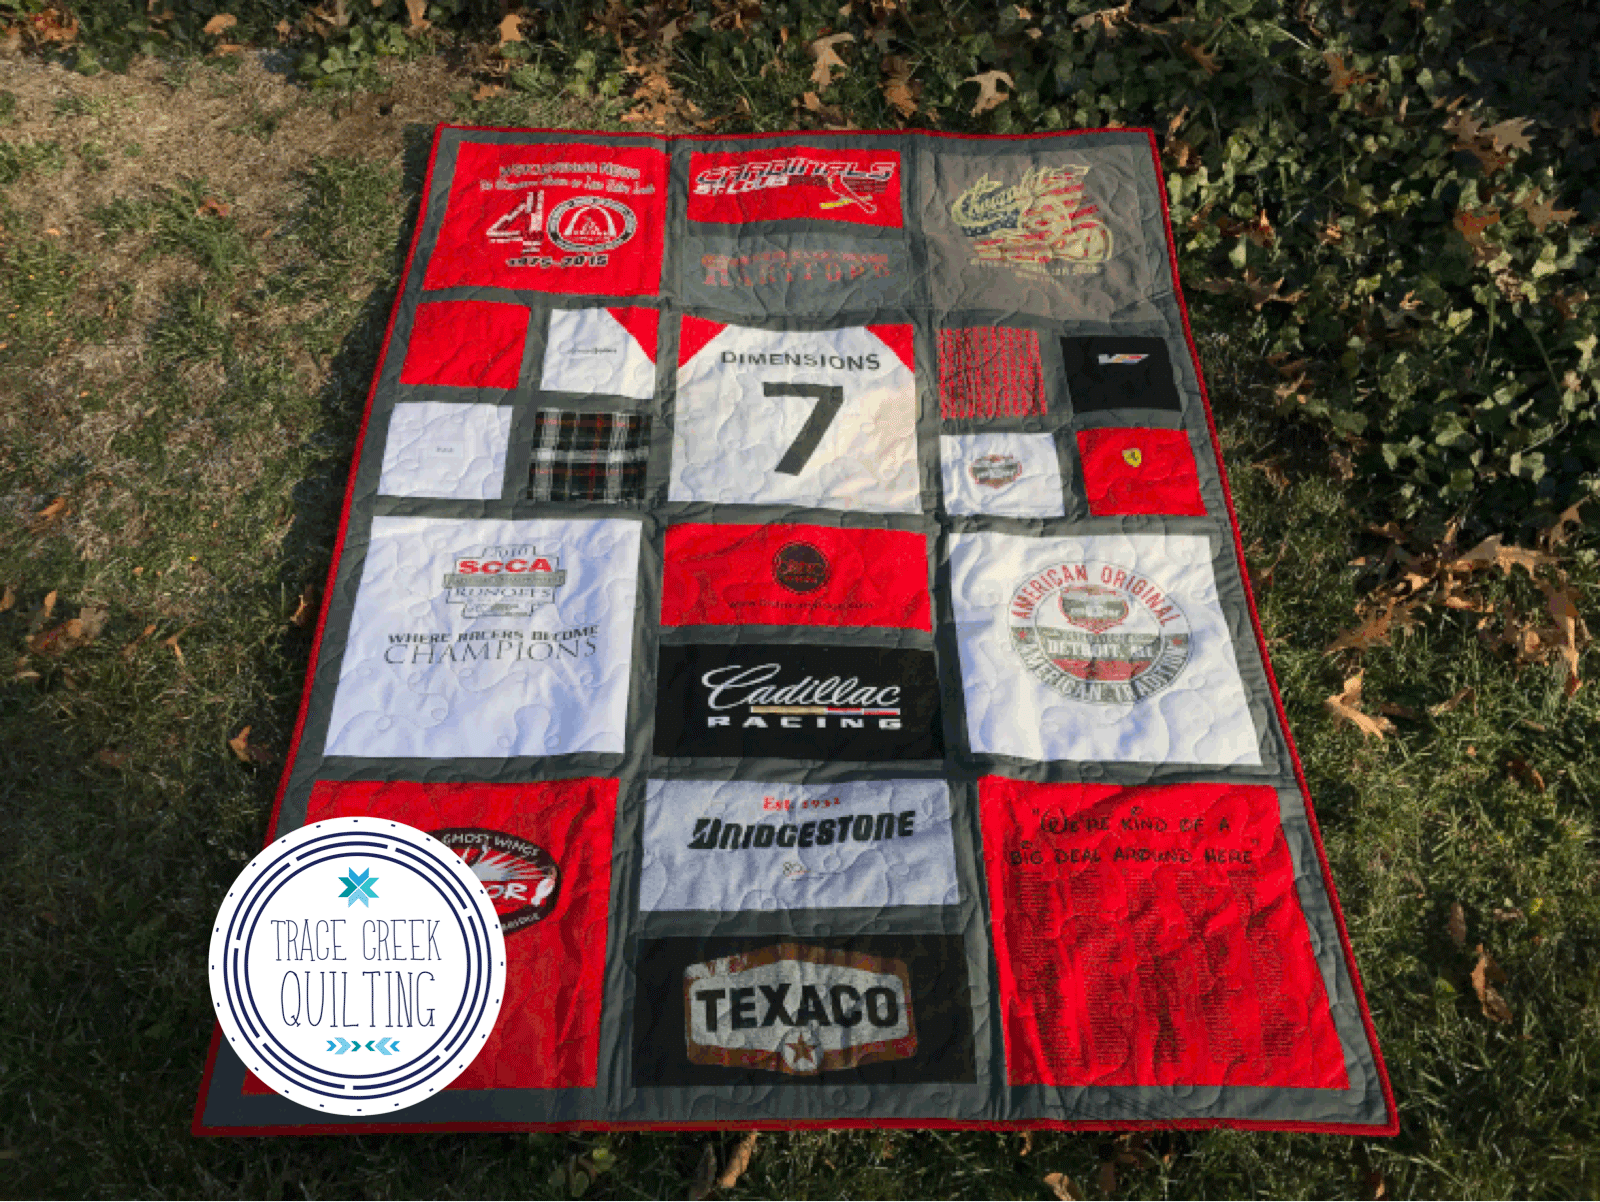 TShirt-Quilt-Trace-Creek-Quilting-013.png